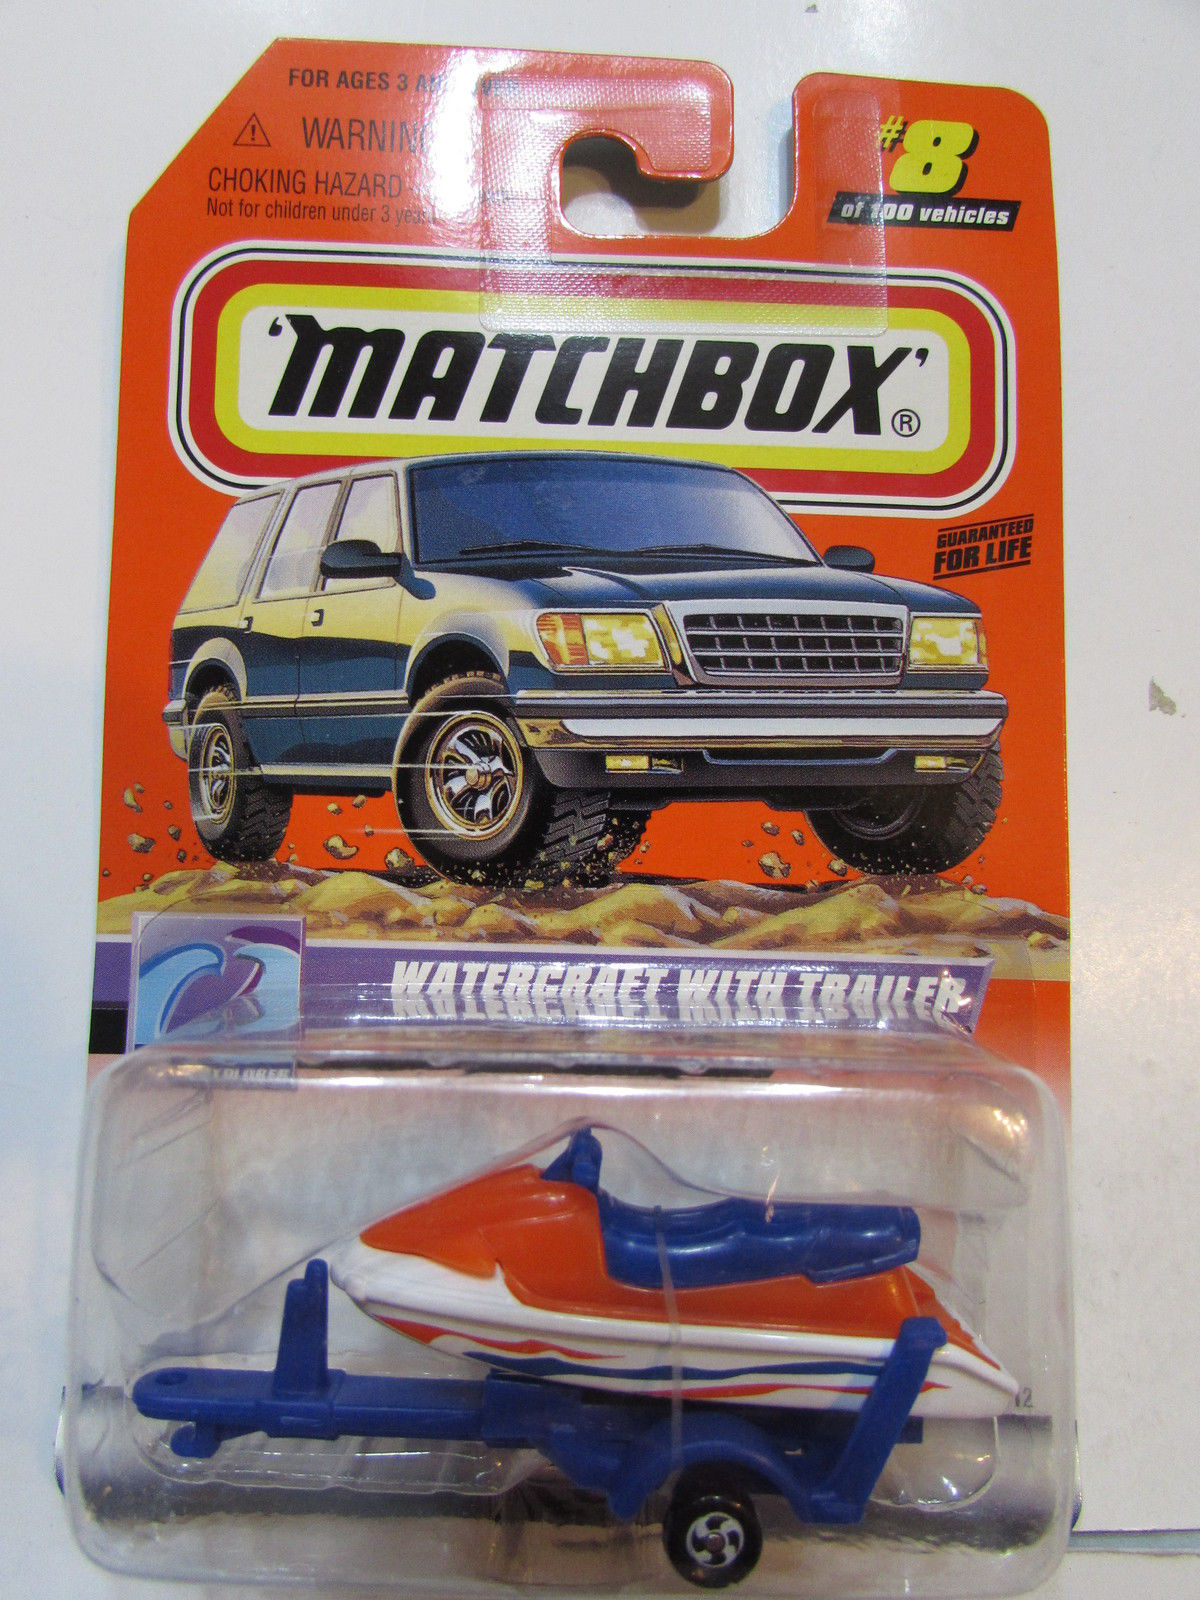 MATCHBOX 1999 WATERCRAFT WITH TRAILER - OCEAN EXPLORER